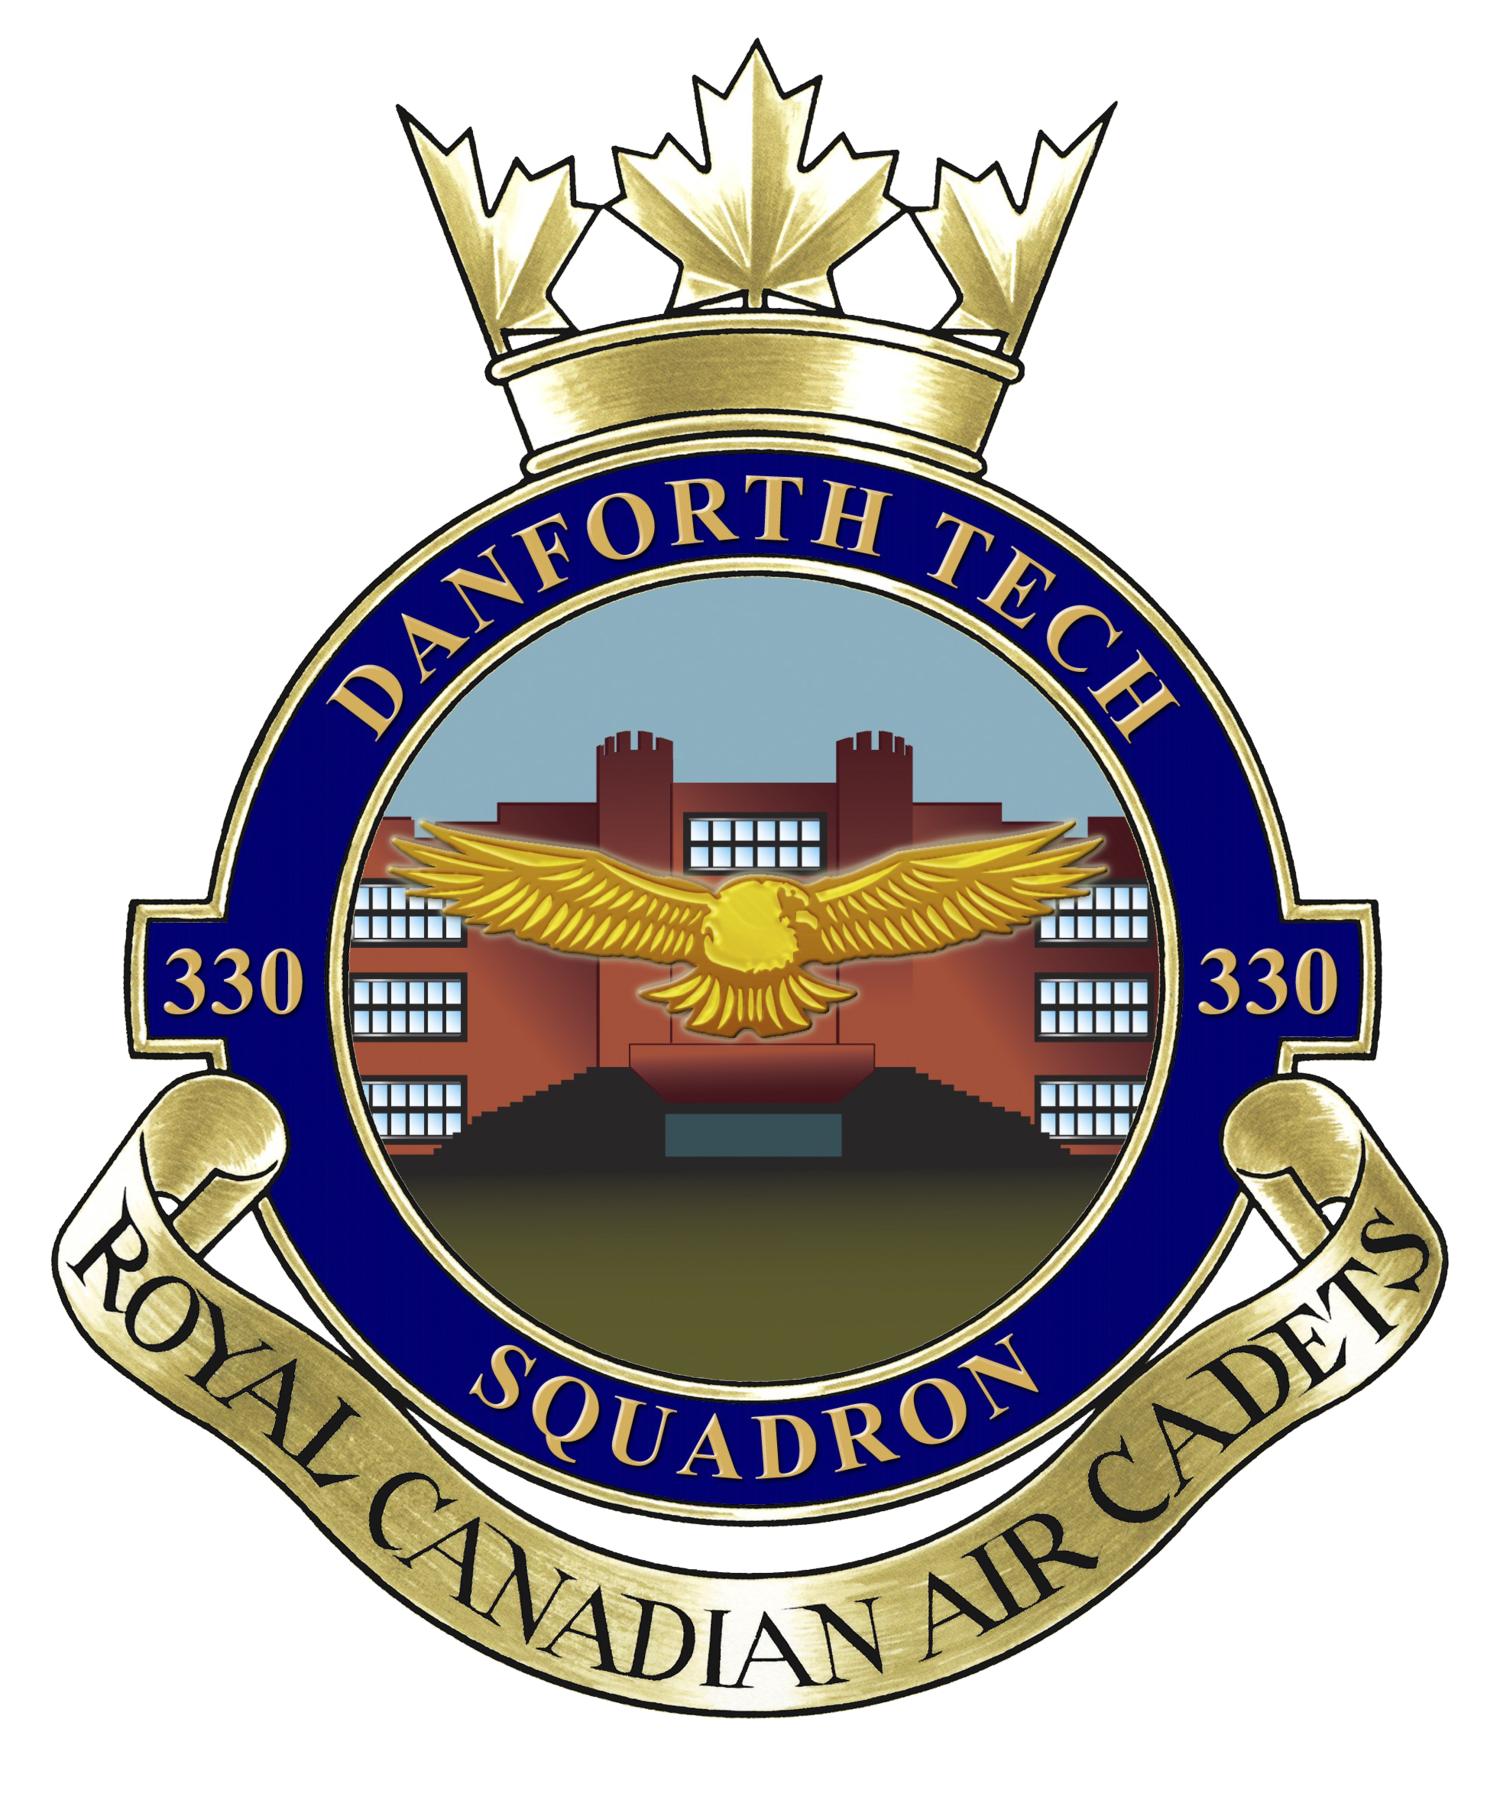 330 Danforth Tech Squadron